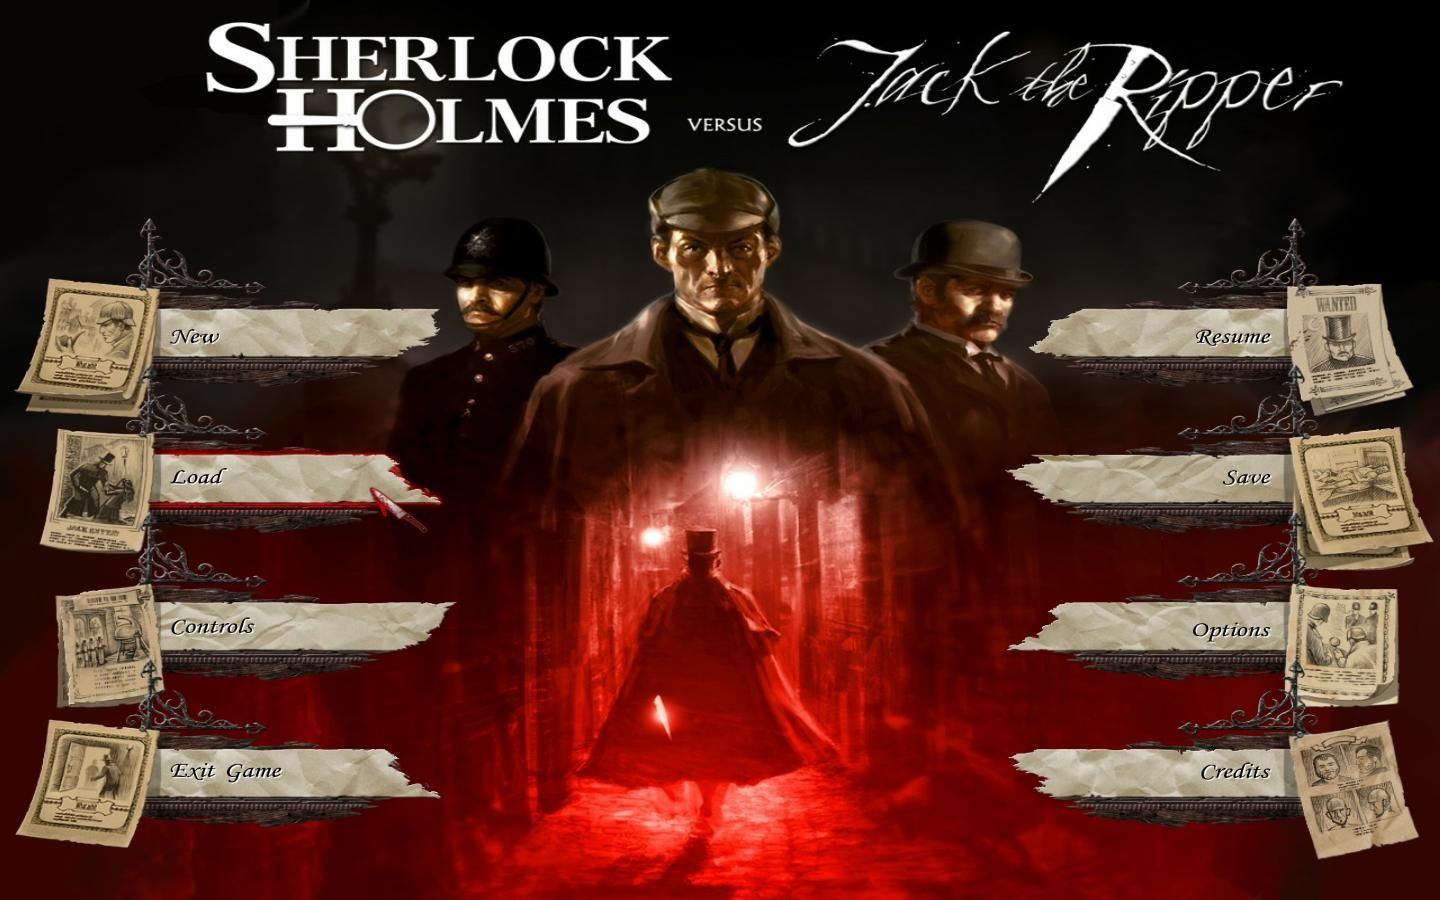 http://www.mobygames.com/images/shots/l/453741-sherlock-holmes-vs-jack-the-ripper-windows-screenshot-startup.jpg